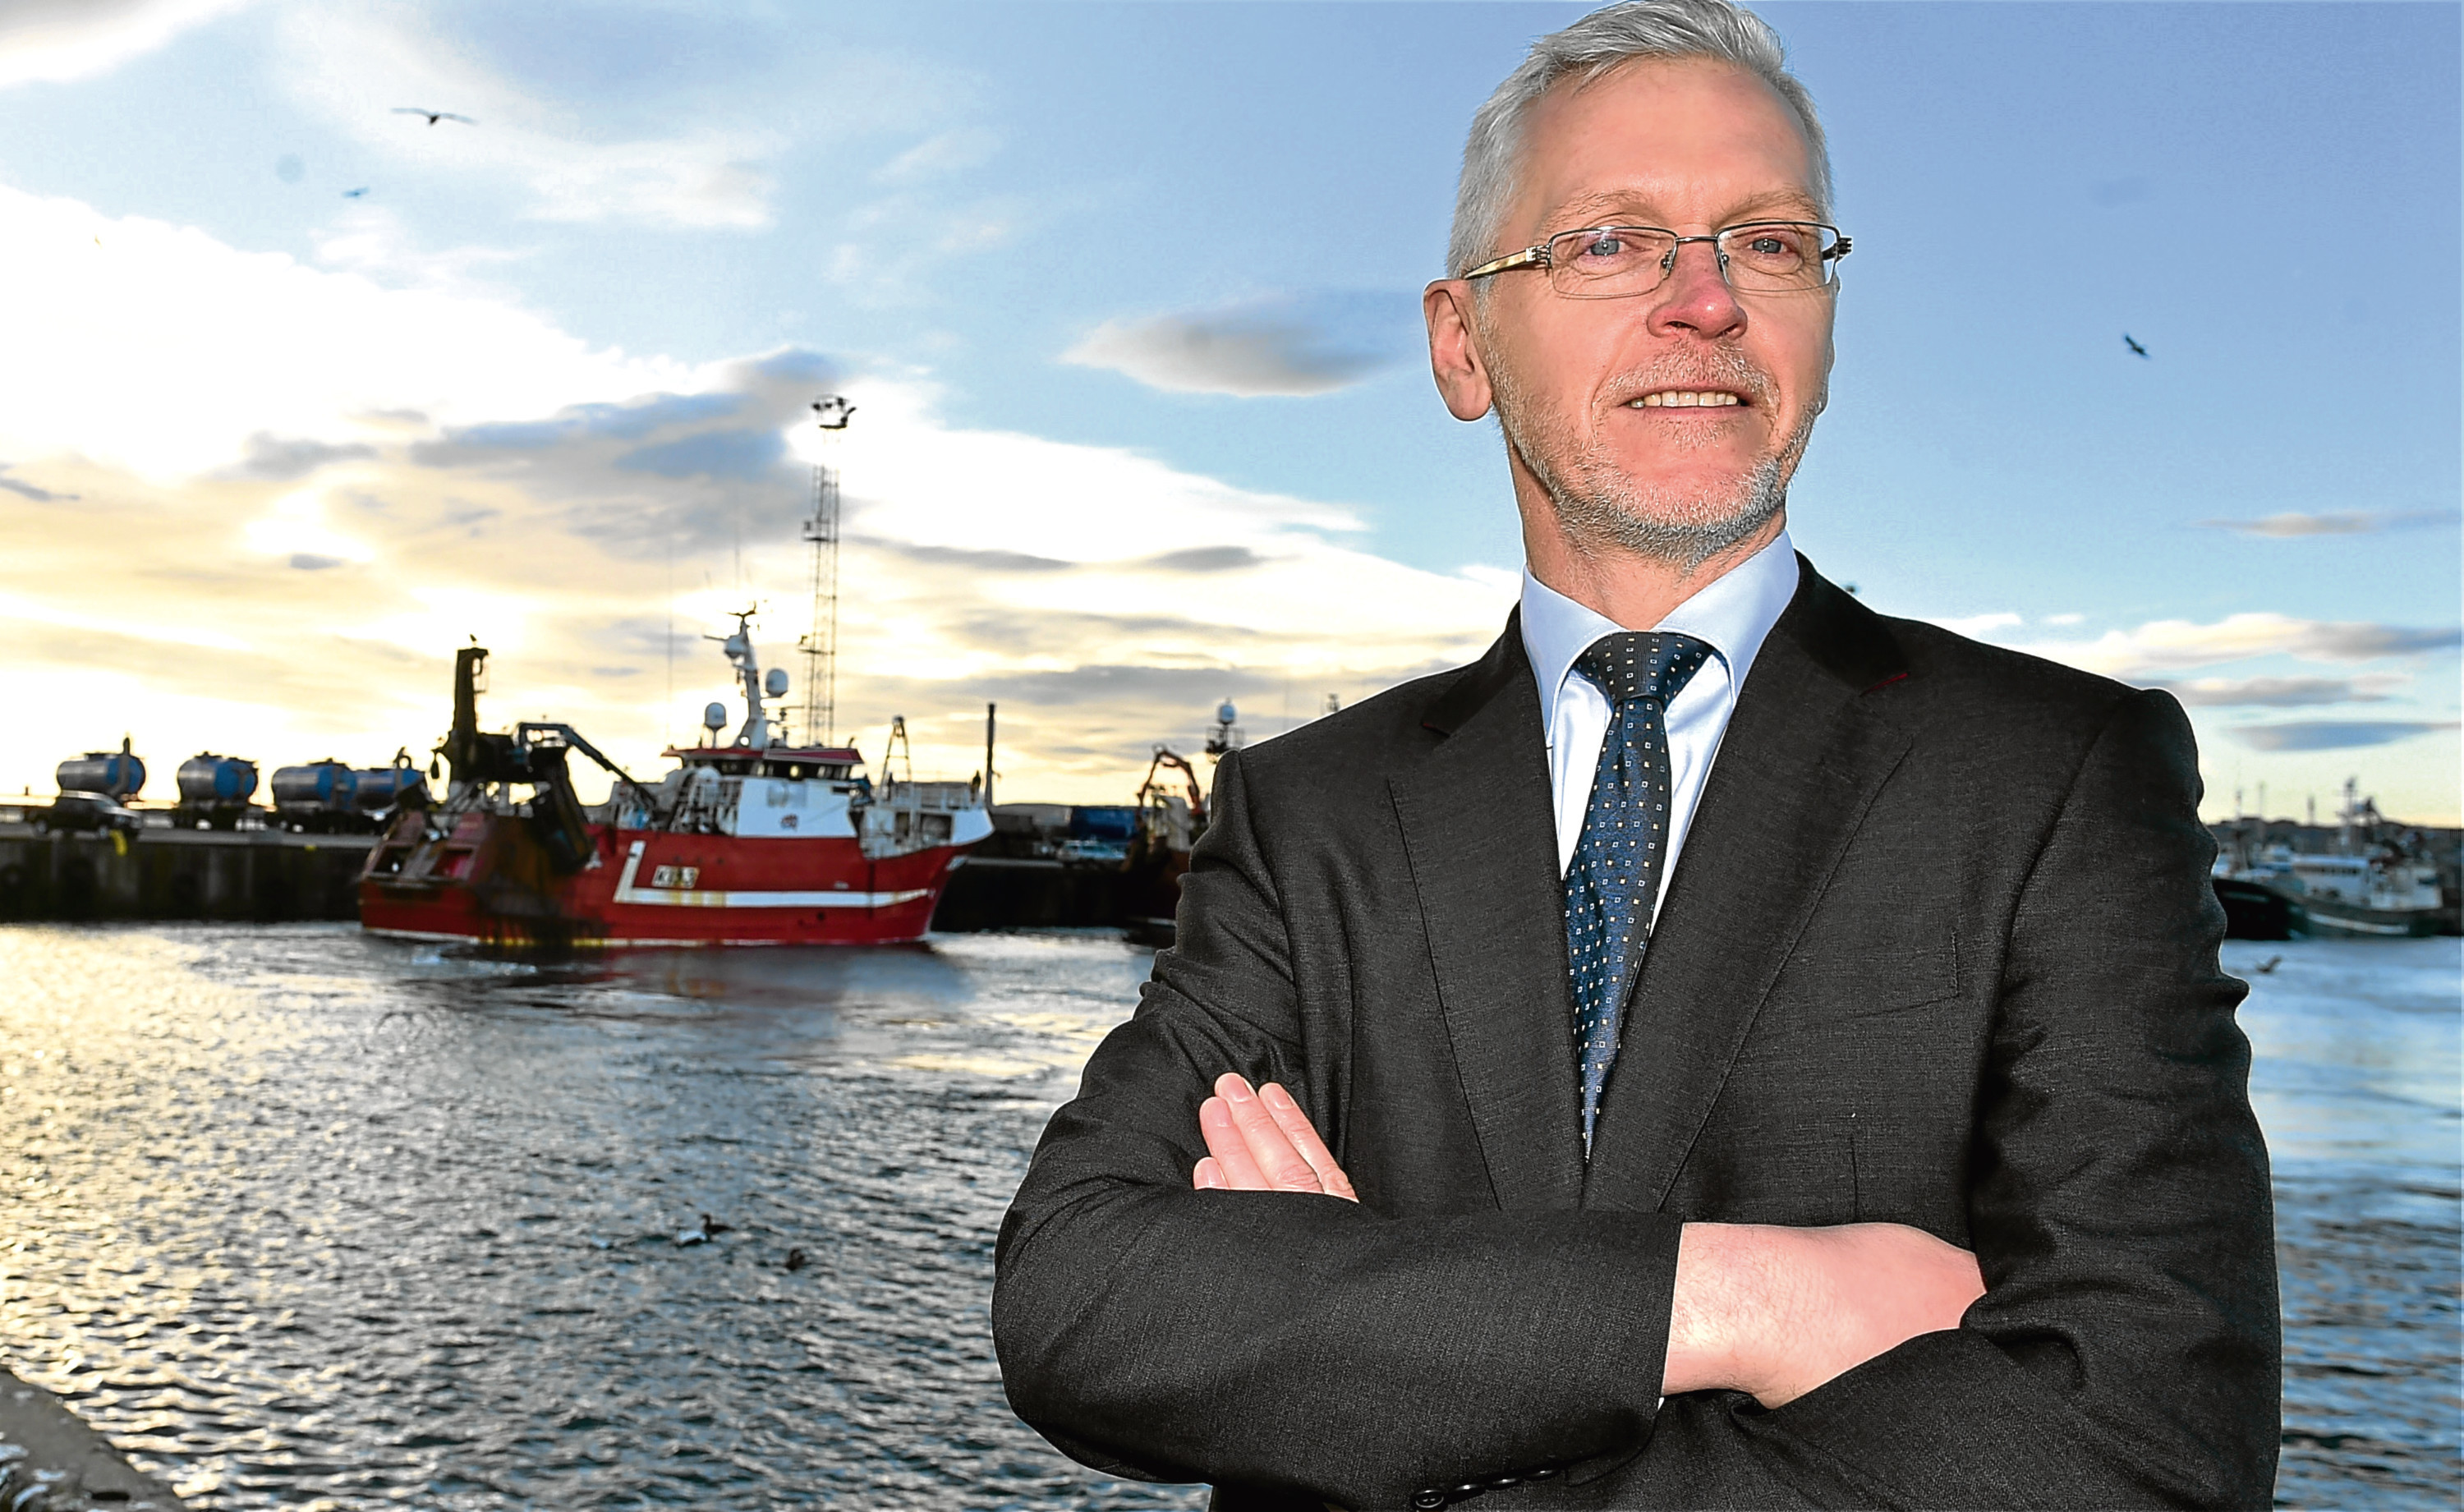 Ian Laidlaw, pictured at the harbour.